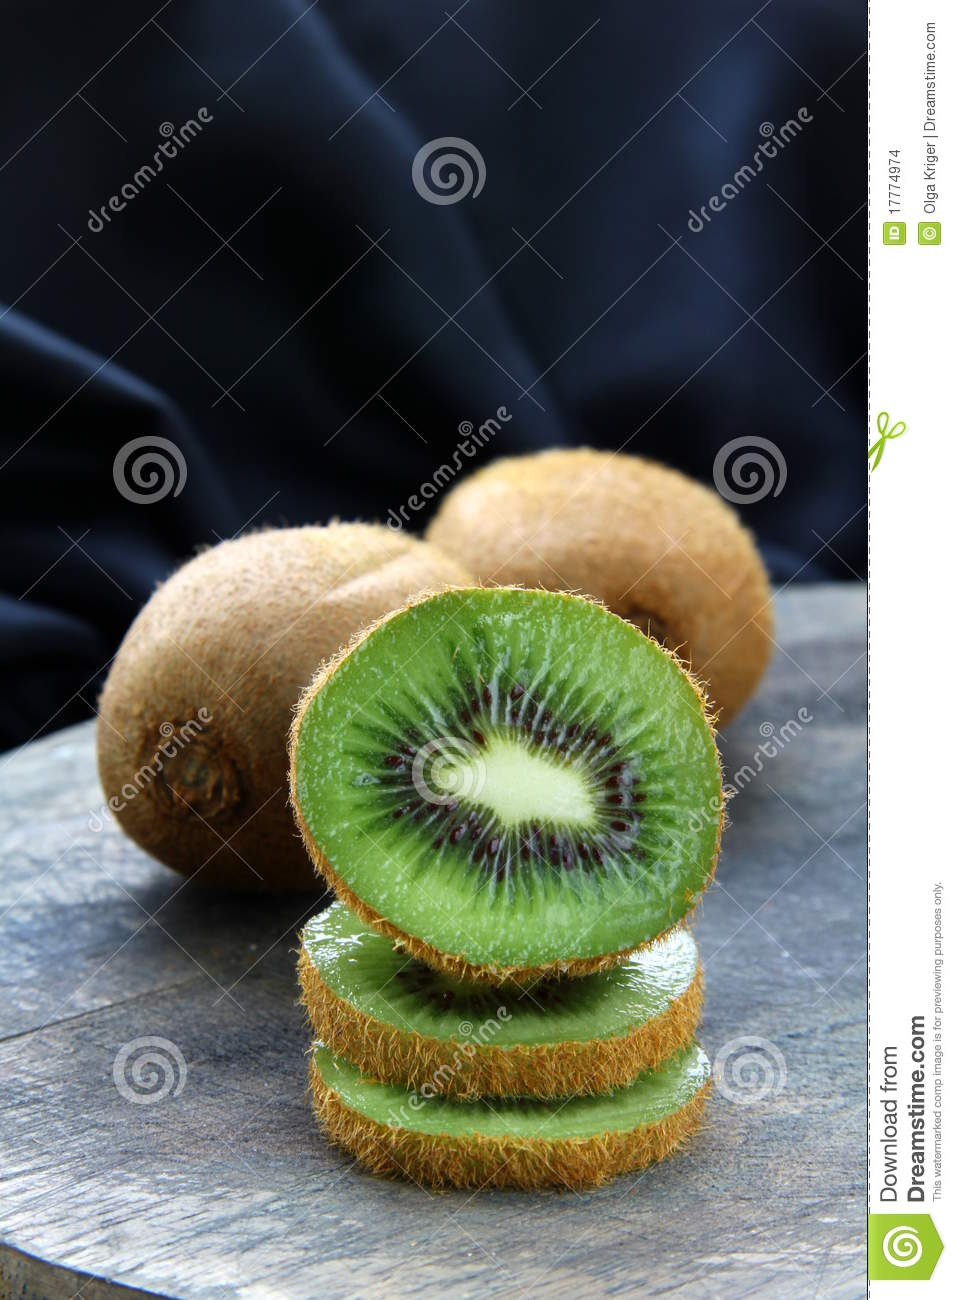 how to tell when a kiwi is ripe